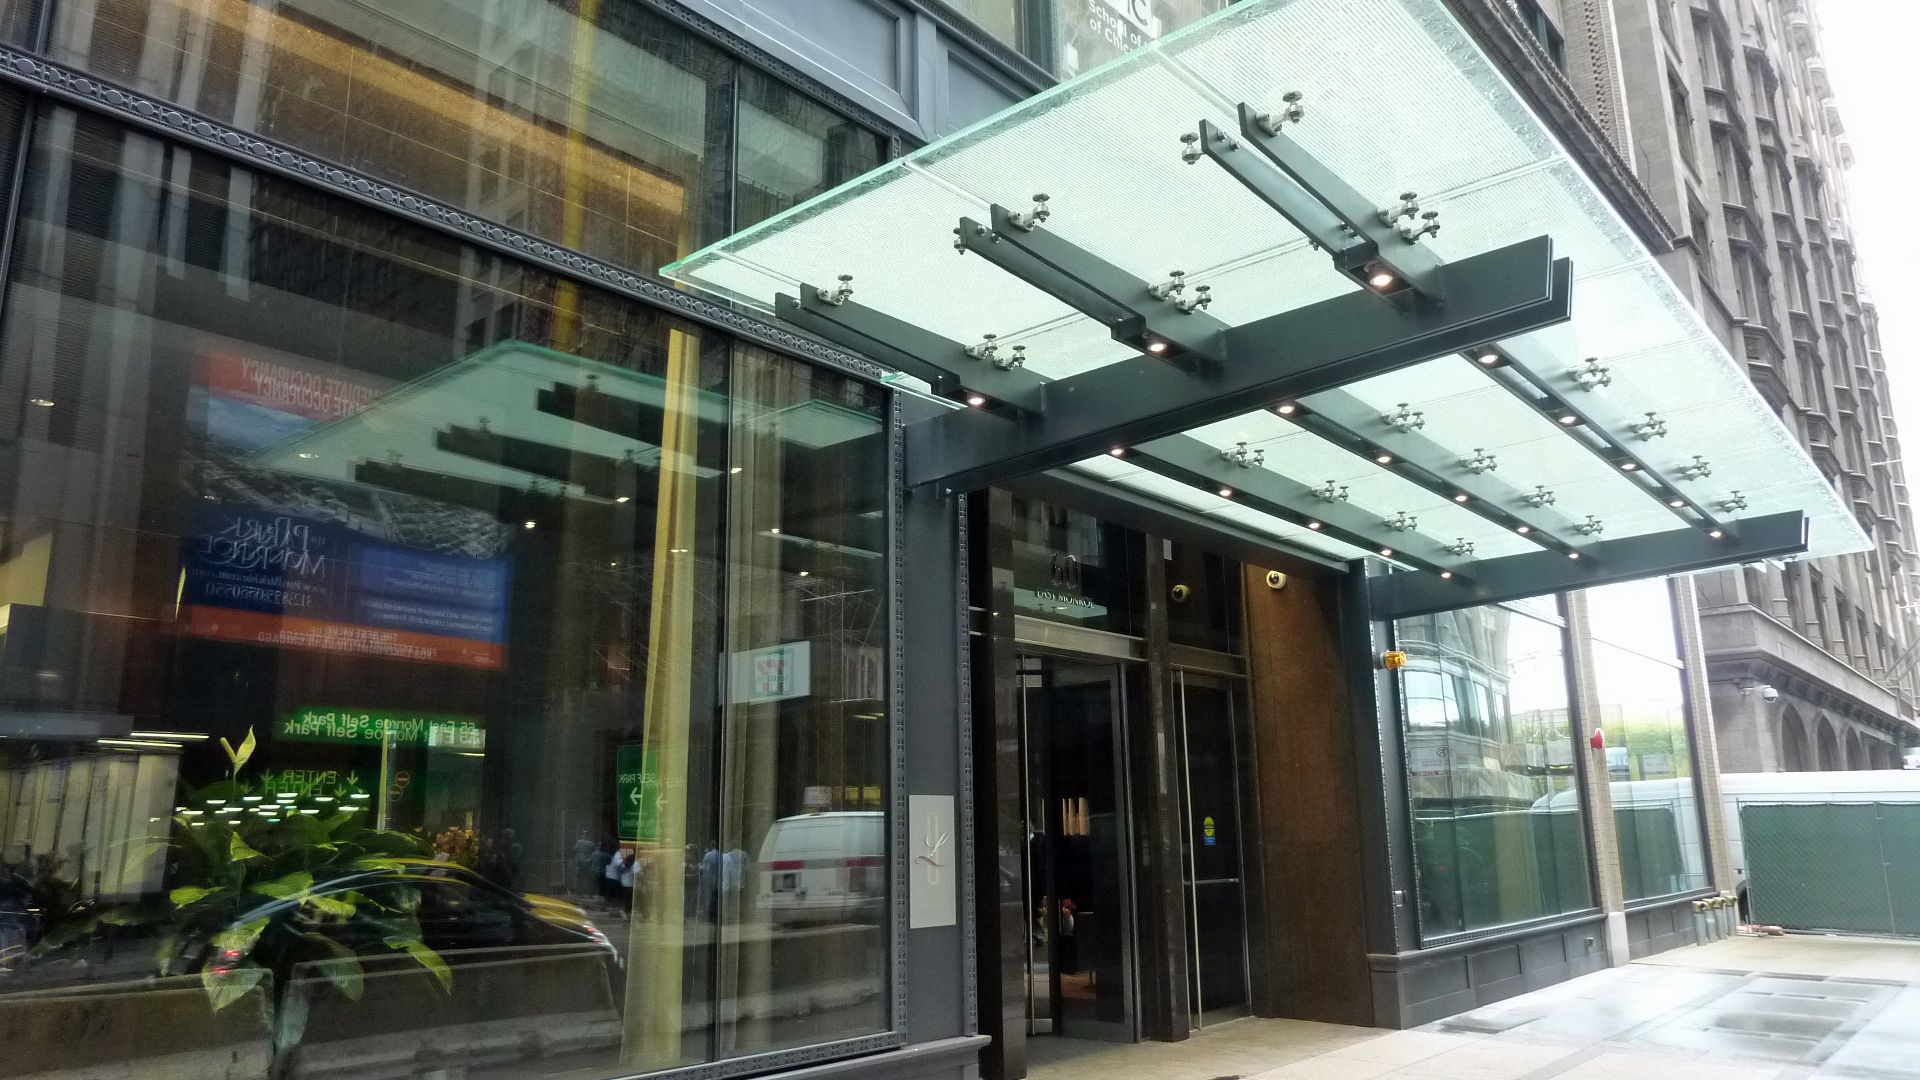 Canopy Design Glass Building House Office Buildings Spaces Abdul Basit Trump Tower Adaptive Reuse Canopies